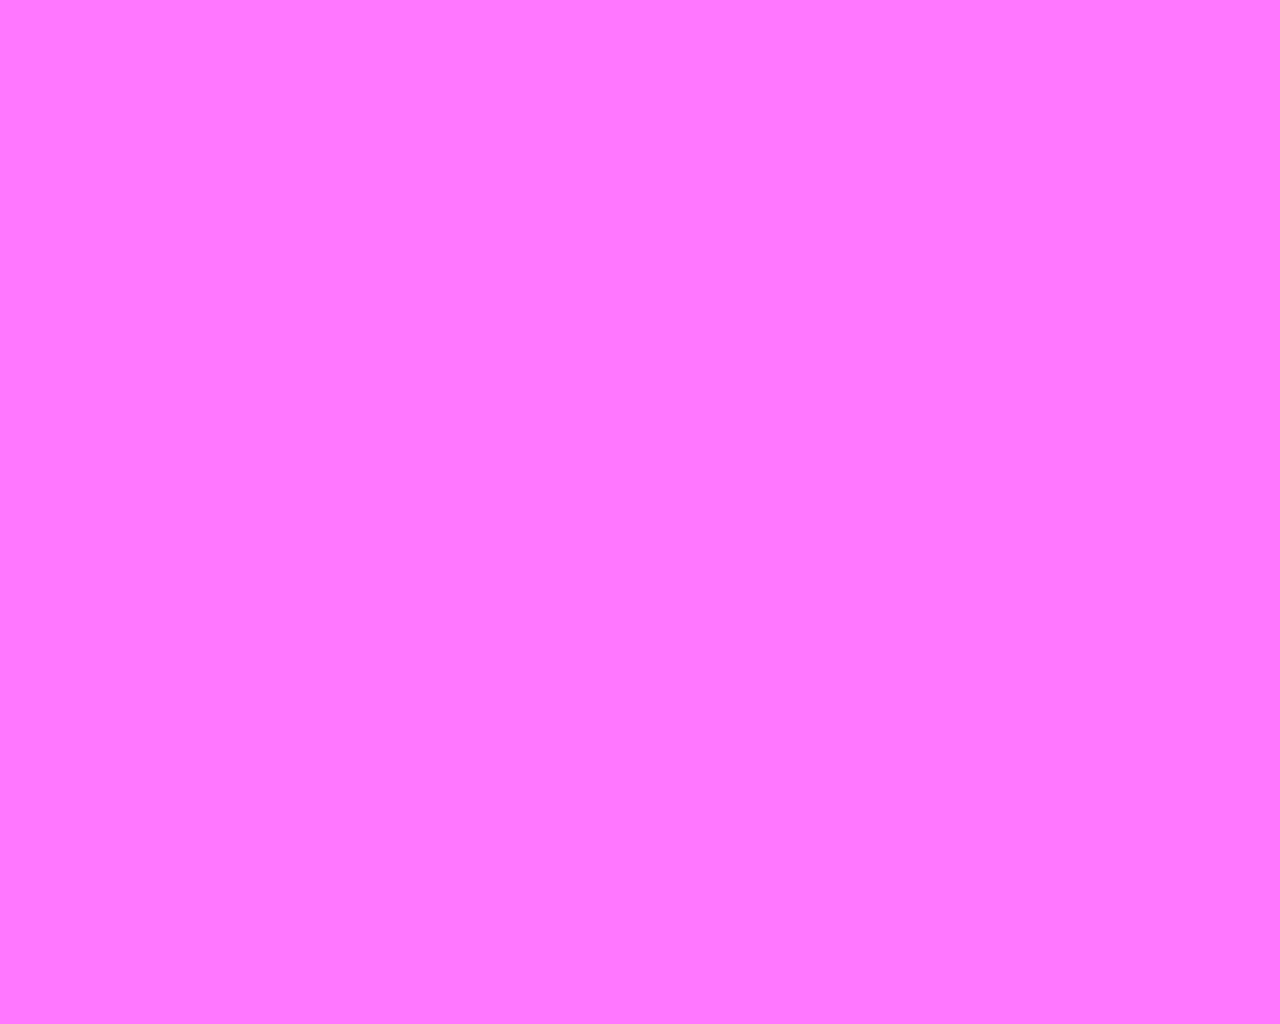 1280x1024 Fuchsia Pink Solid Color Background